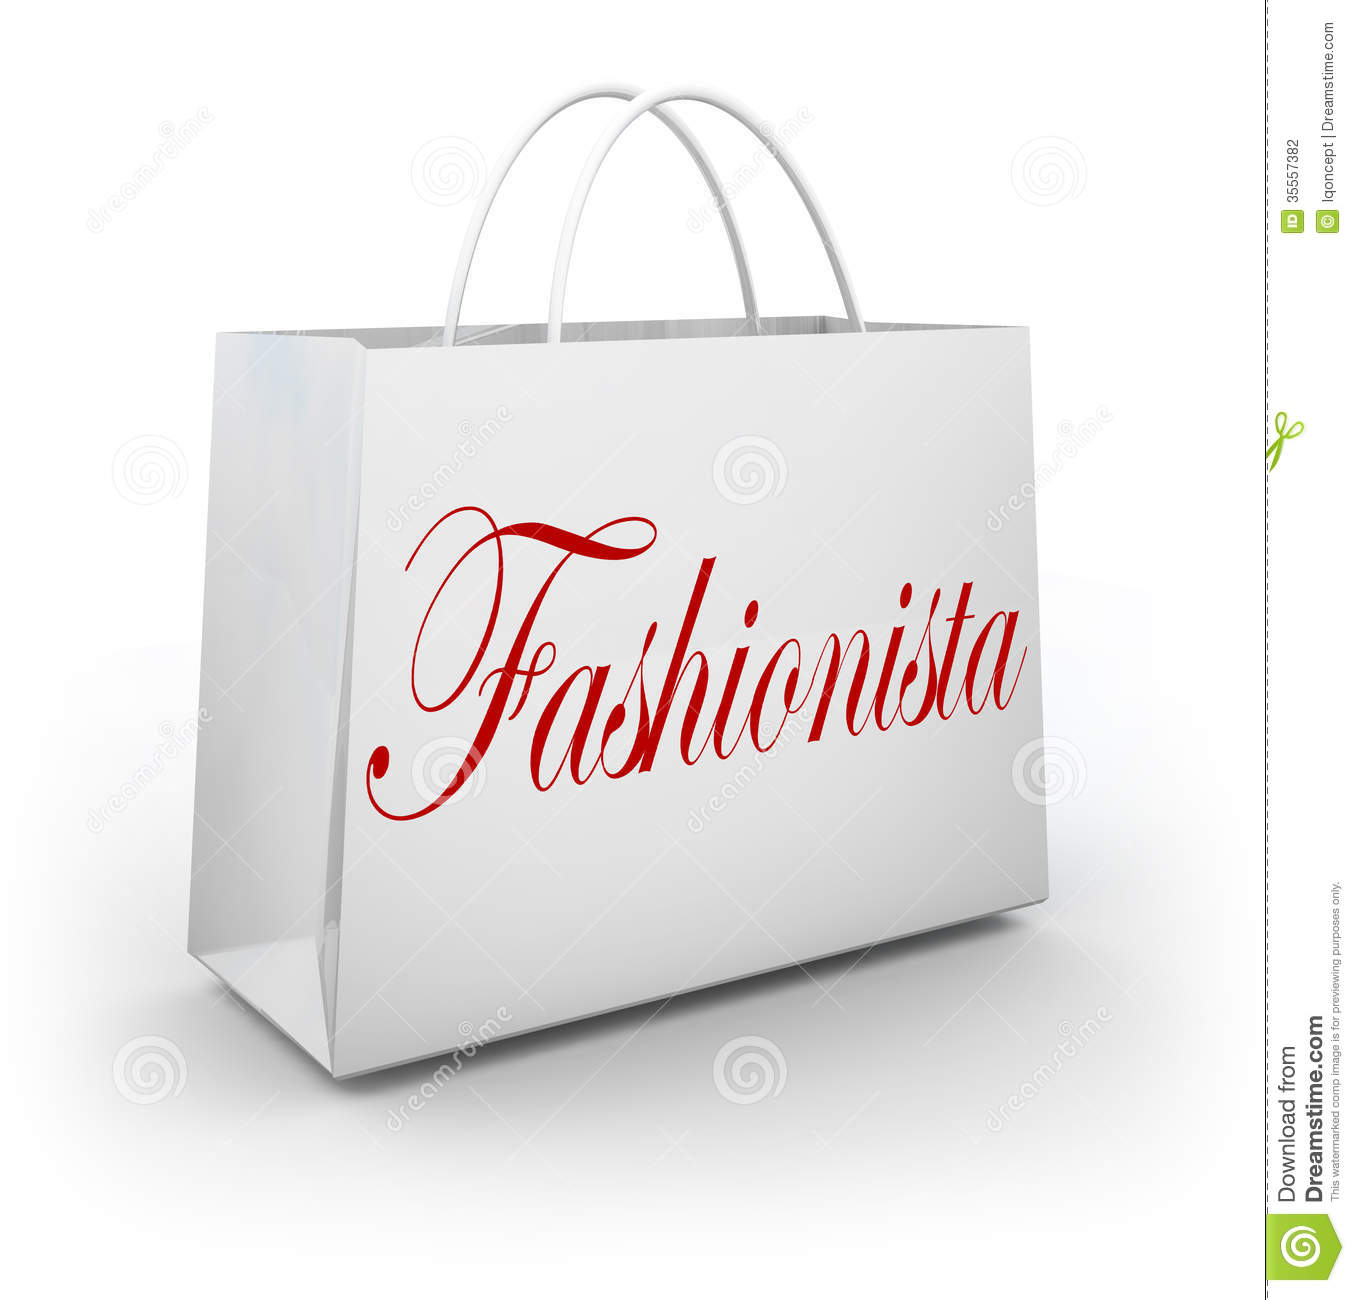 Fashionista Word On A Paper Shopping Bag Illustrating A Person Who Is